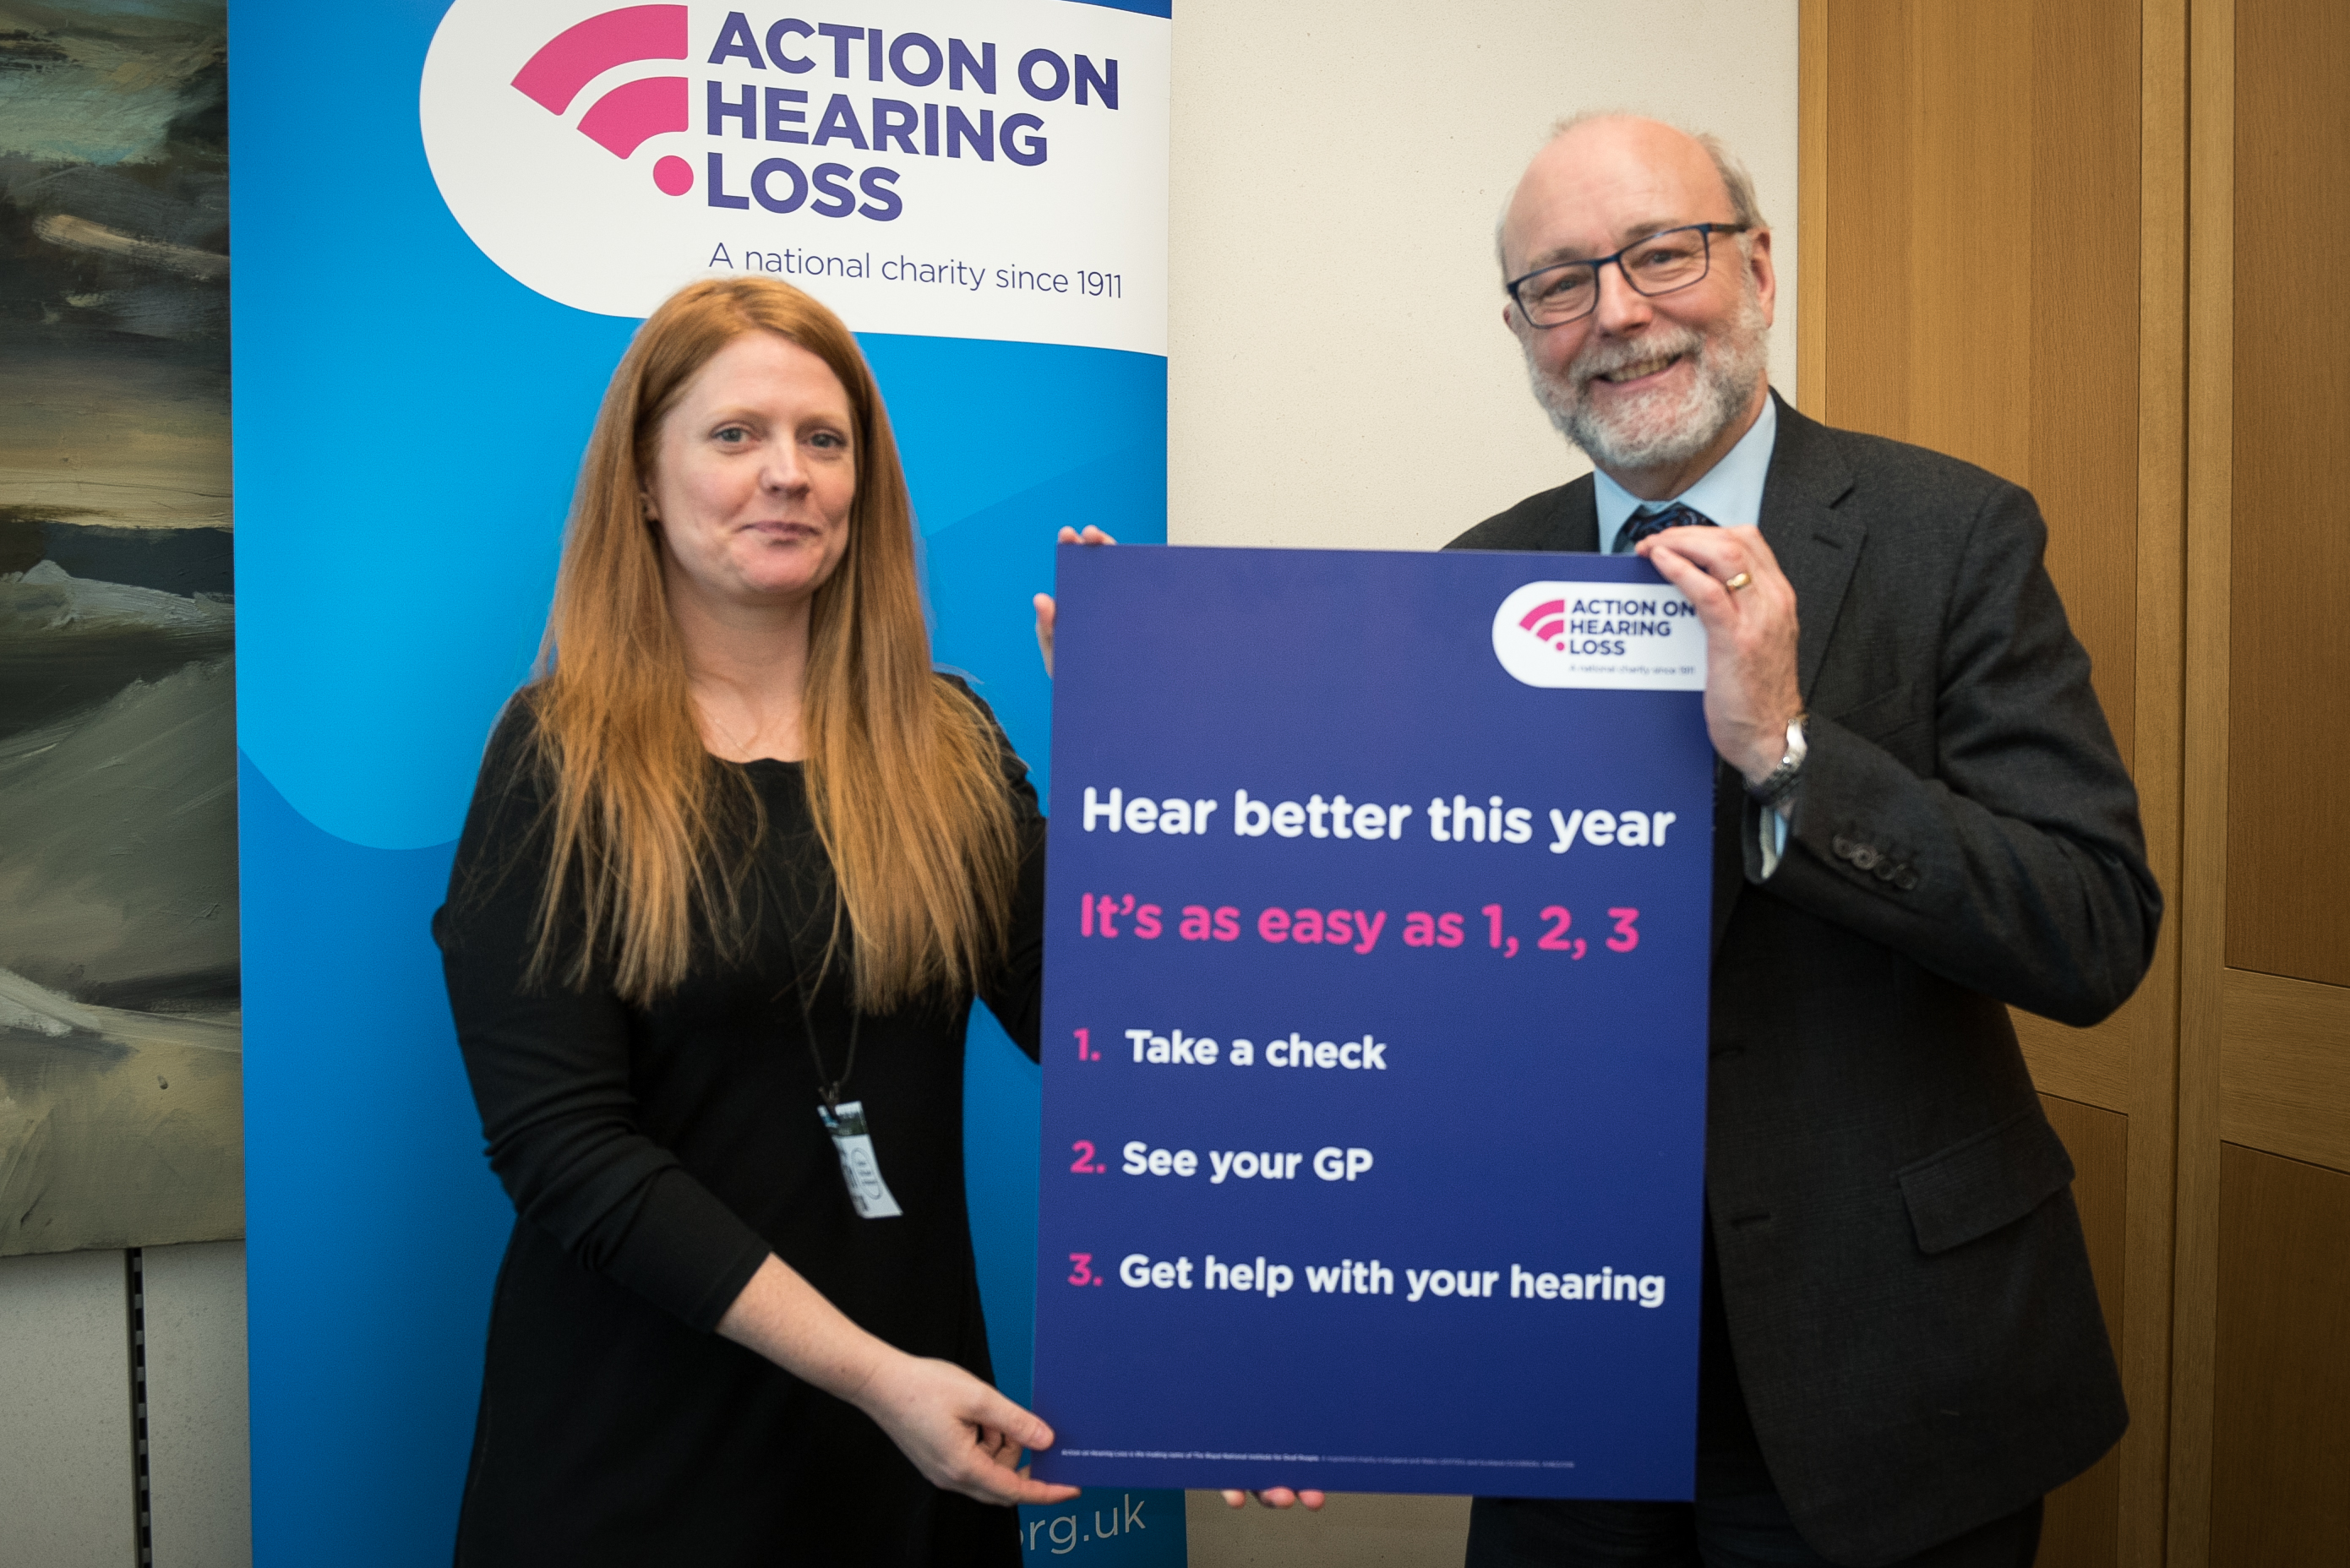 Alex supports 1,2,3 steps to increase hearing screenings